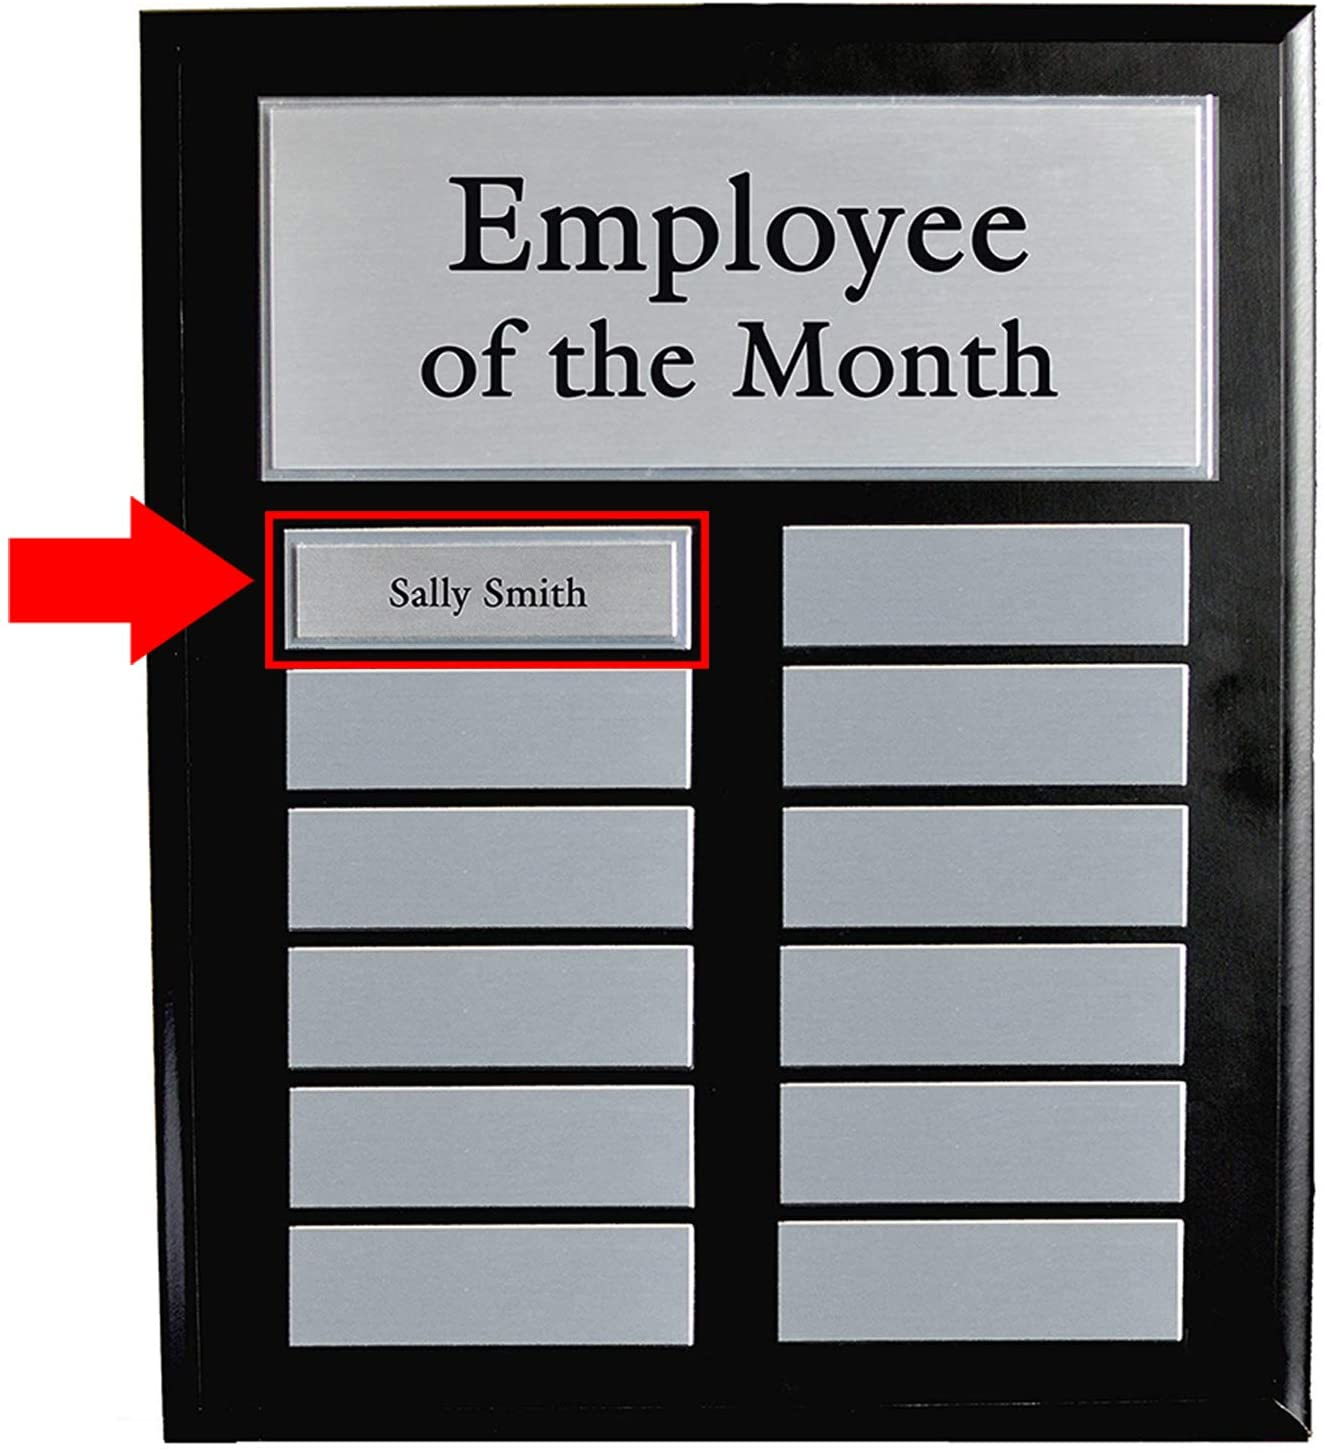 Employee of The Month DIY Perpetual Colored Leaves Plaque Magic Recognition Award Kit Top Performer No Engraving Needed Do It Yourself 12 Plate Fully Customizable Salesperson of The Month